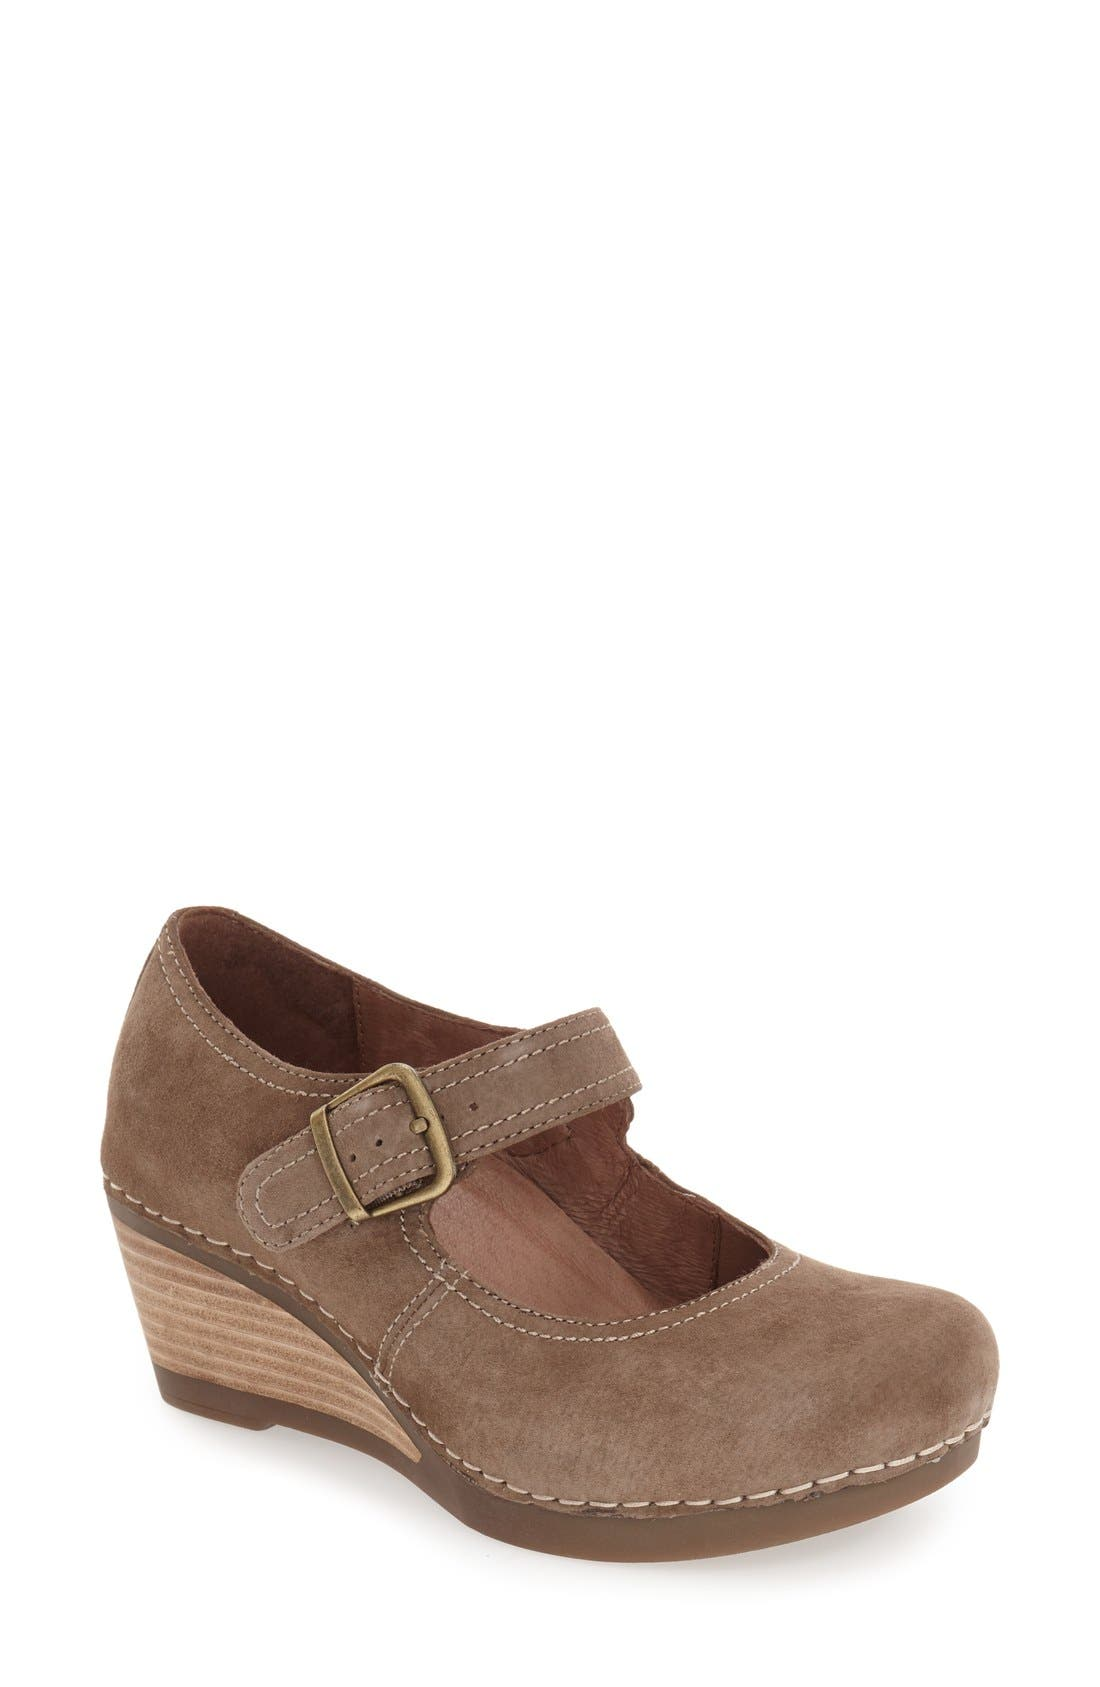 Dansko 'Sandra' Mary Jane Wedge (Women)